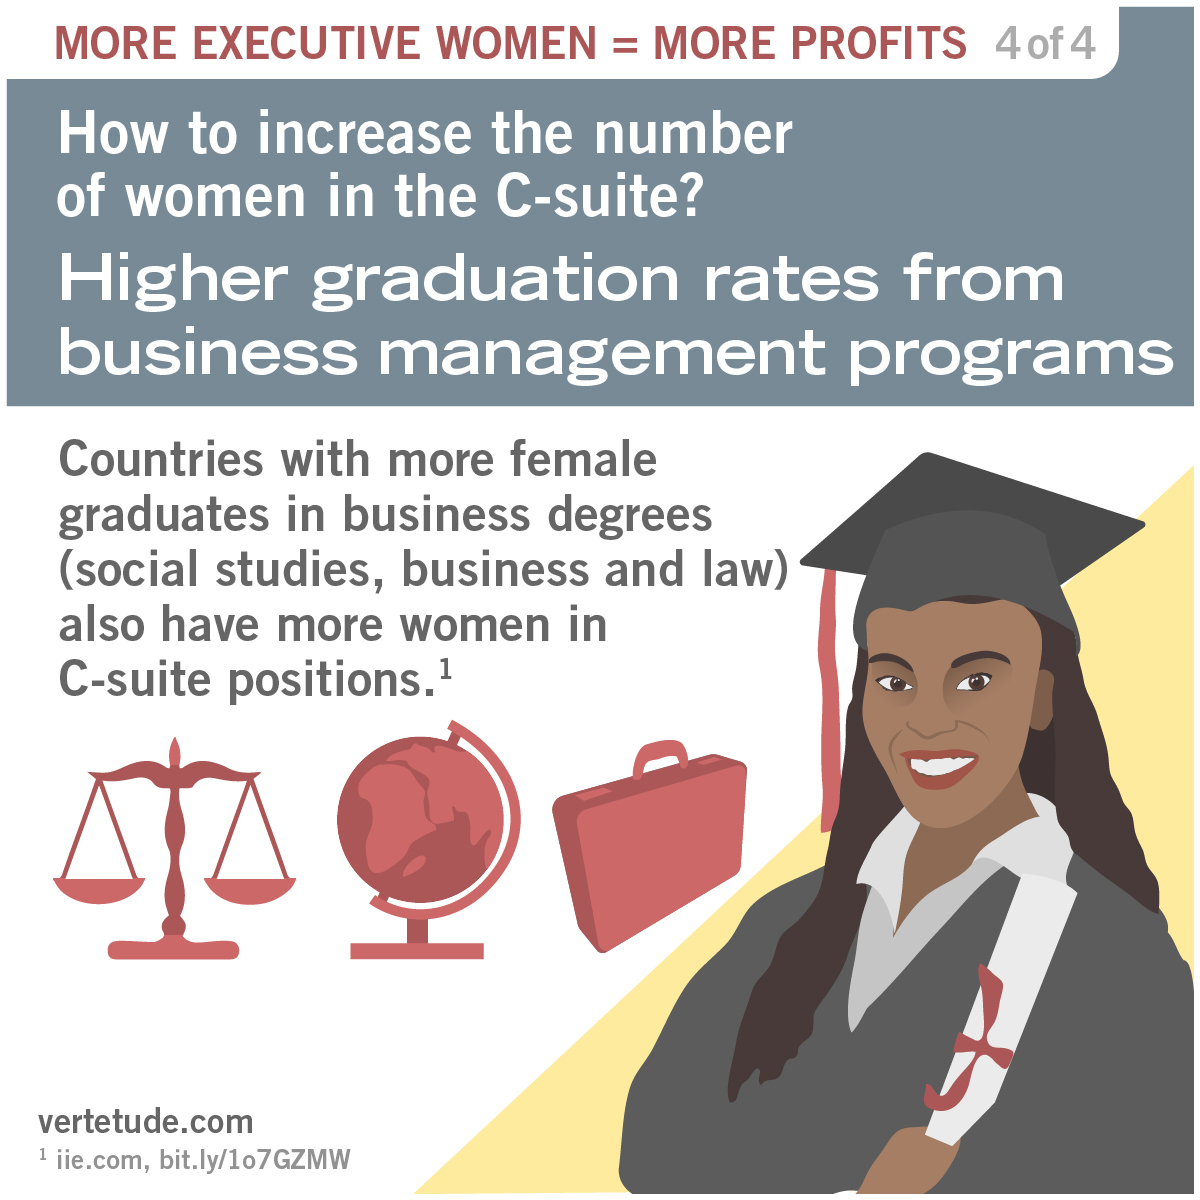 Infographic on higher graduation rates from business management programs